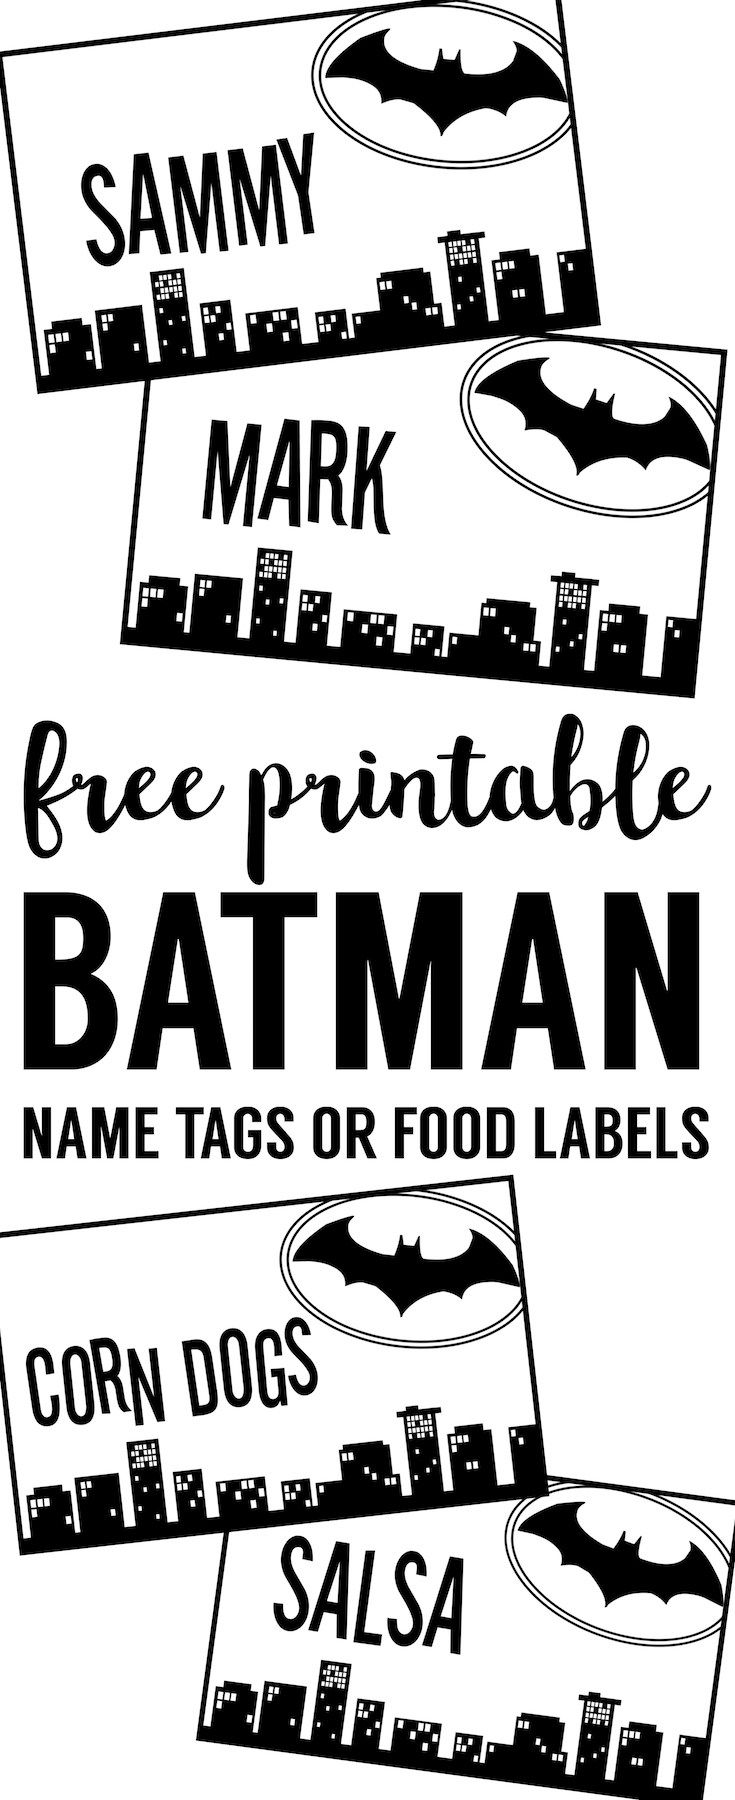 Batman Name Tags Free Printable. Use this template to make name cards, place cards, or food labels for your DIY Batman birthday party, baby shower, or Halloween party decor.